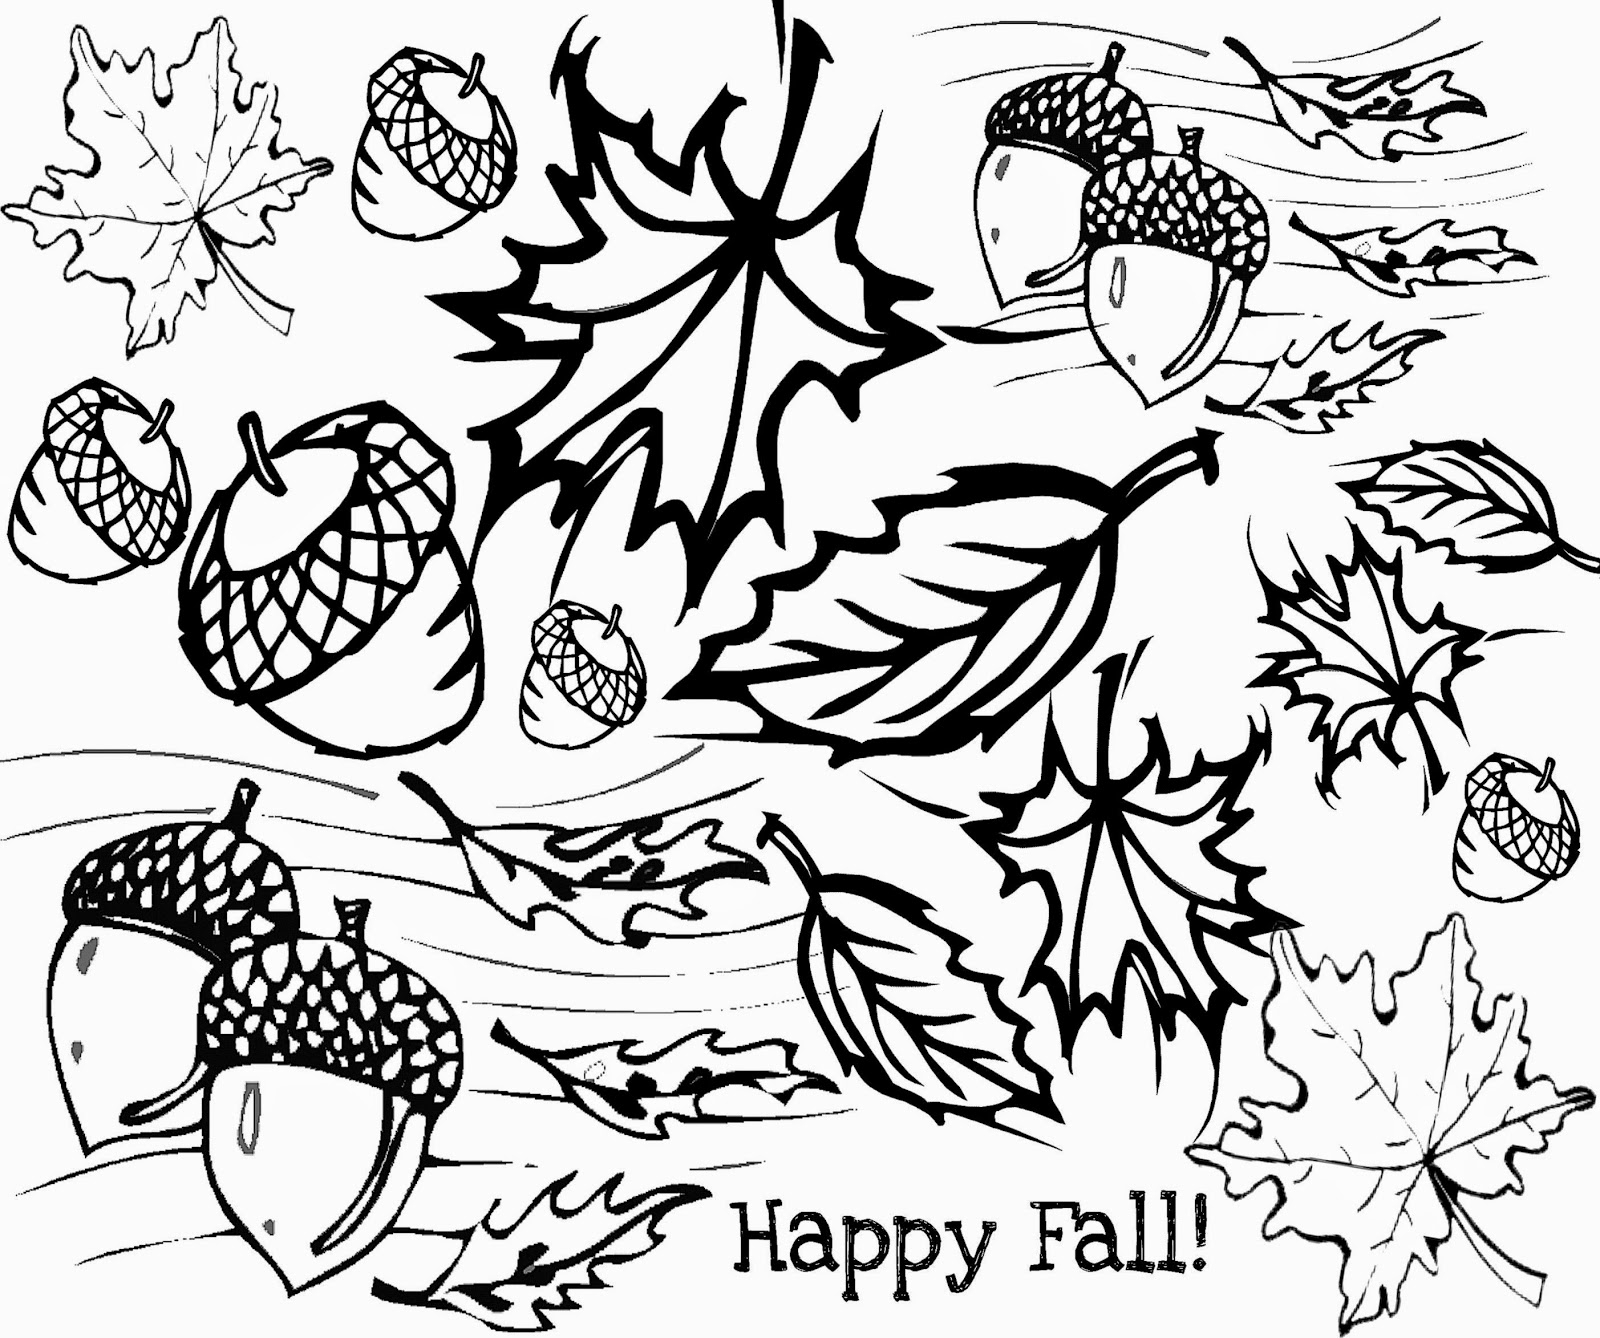 Free Printable Fall Coloring Pages for Kids - Best Coloring Pages ... | 1338x1600